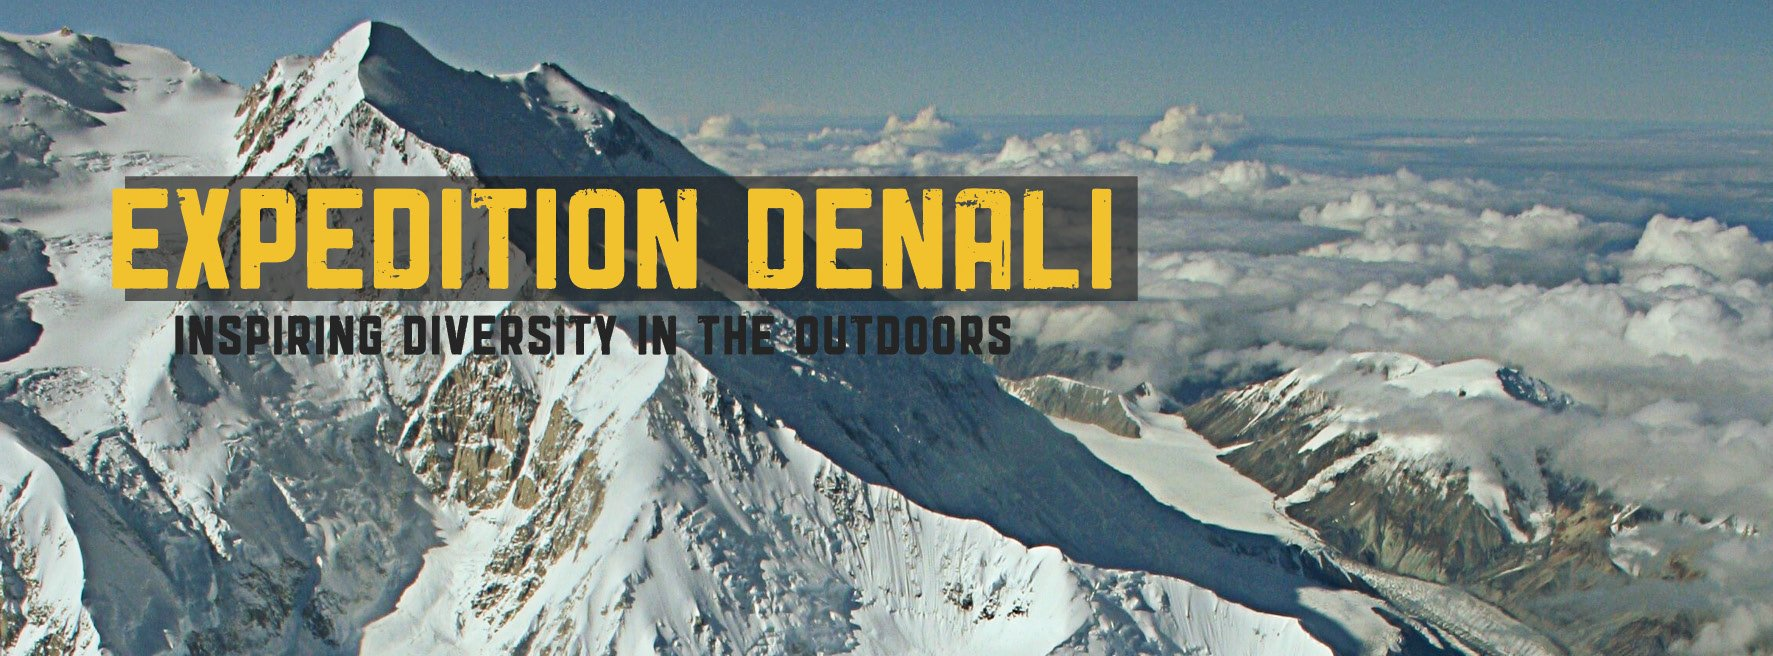 Expedition-Denali-Header.jpg